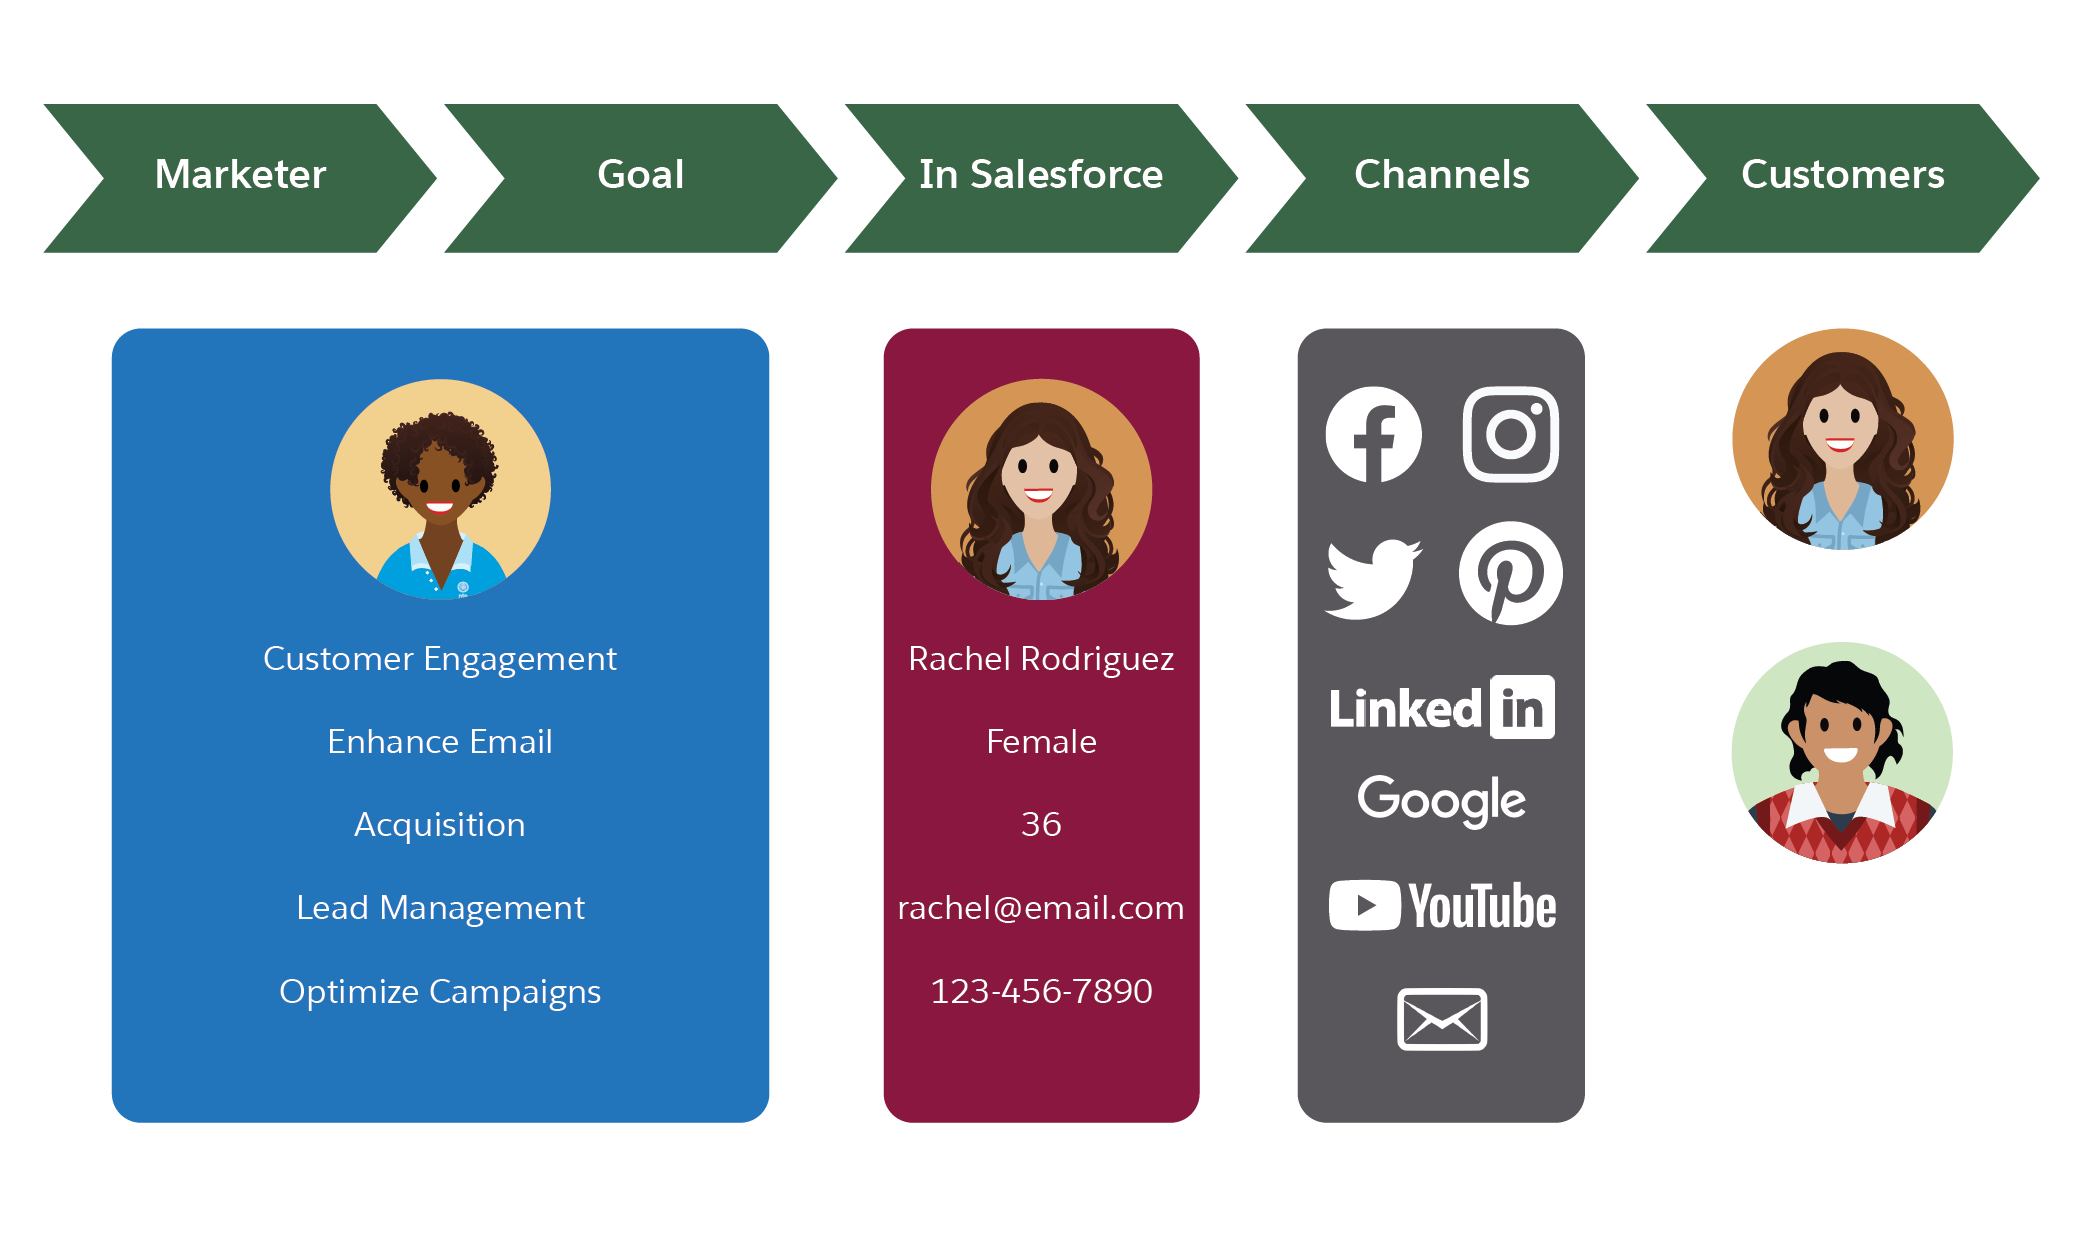 Graphic representation of strategy of marketer goals, using Salesforce data within various channels to reach new customers.